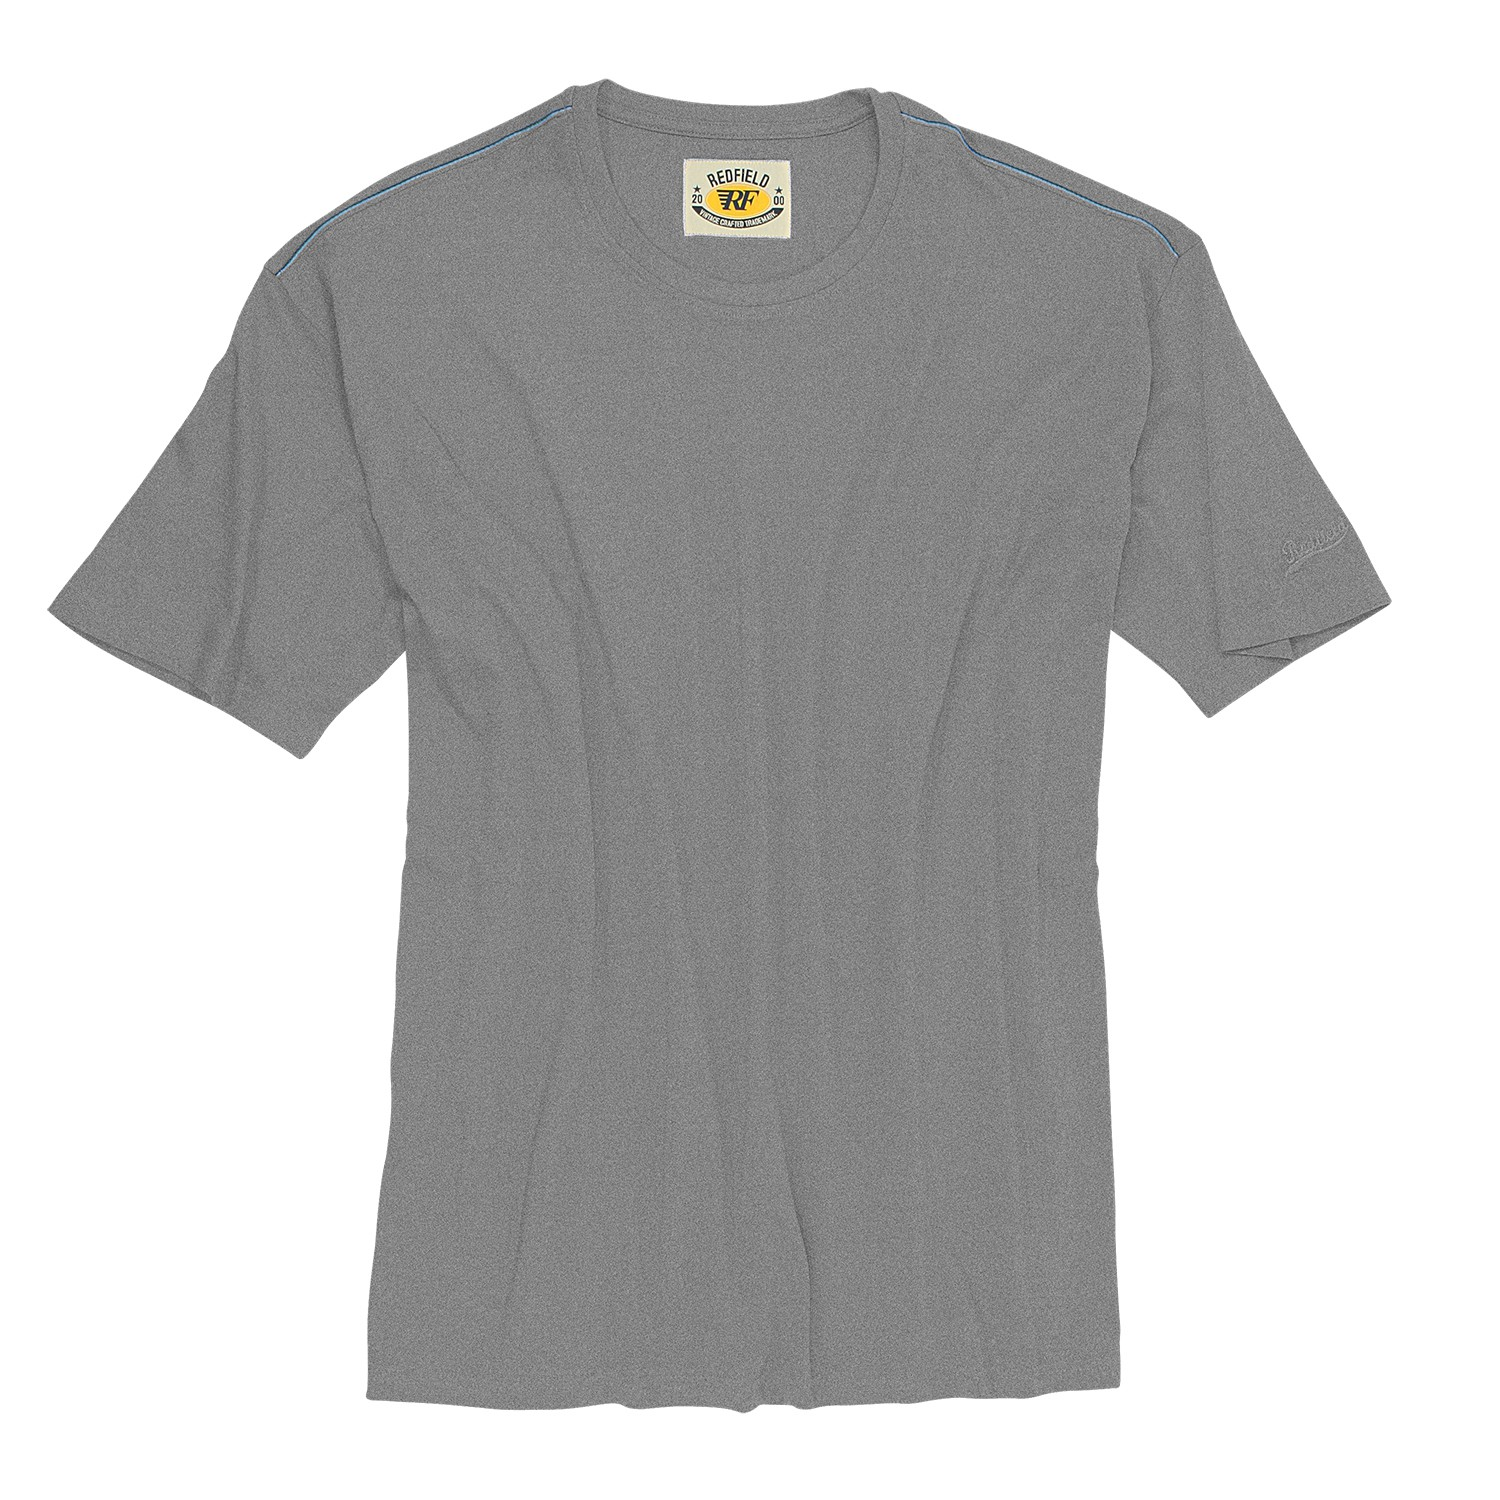 detail image to grey crew neck t shirt by redfield in oversizes up to. Black Bedroom Furniture Sets. Home Design Ideas